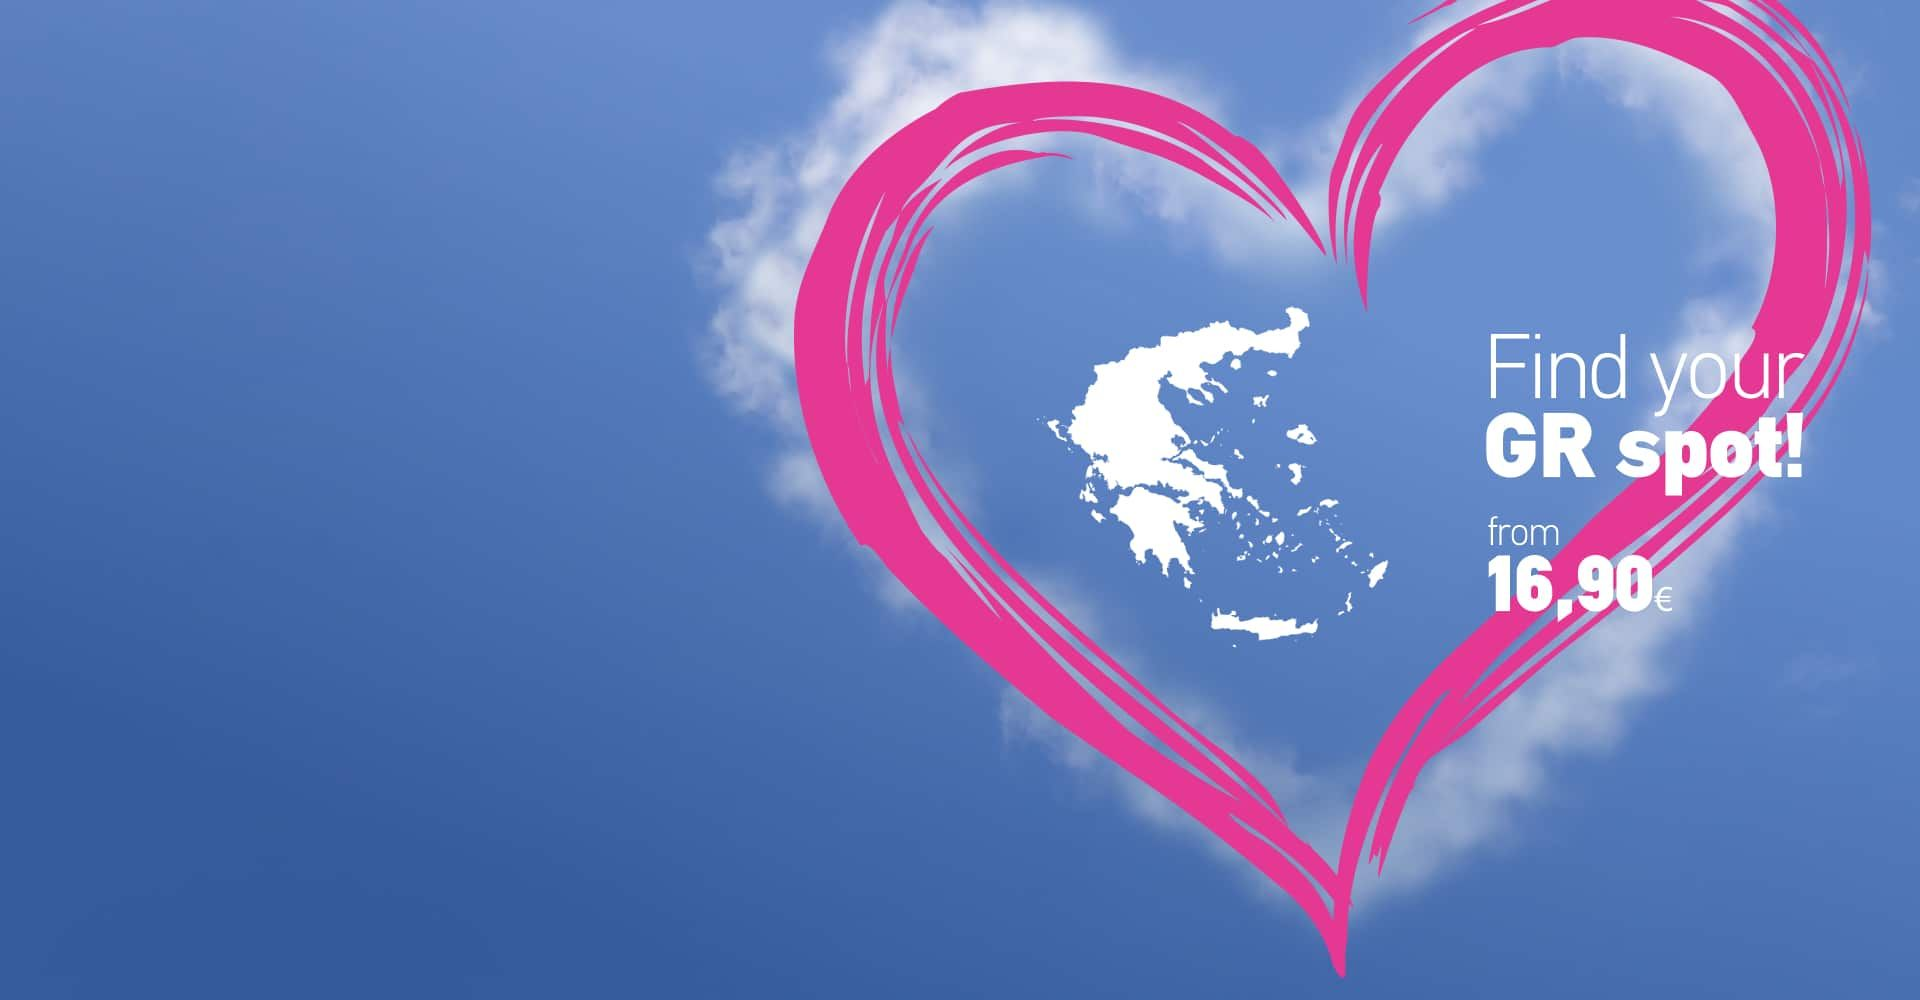 Love is in the air – Find your GR spot!